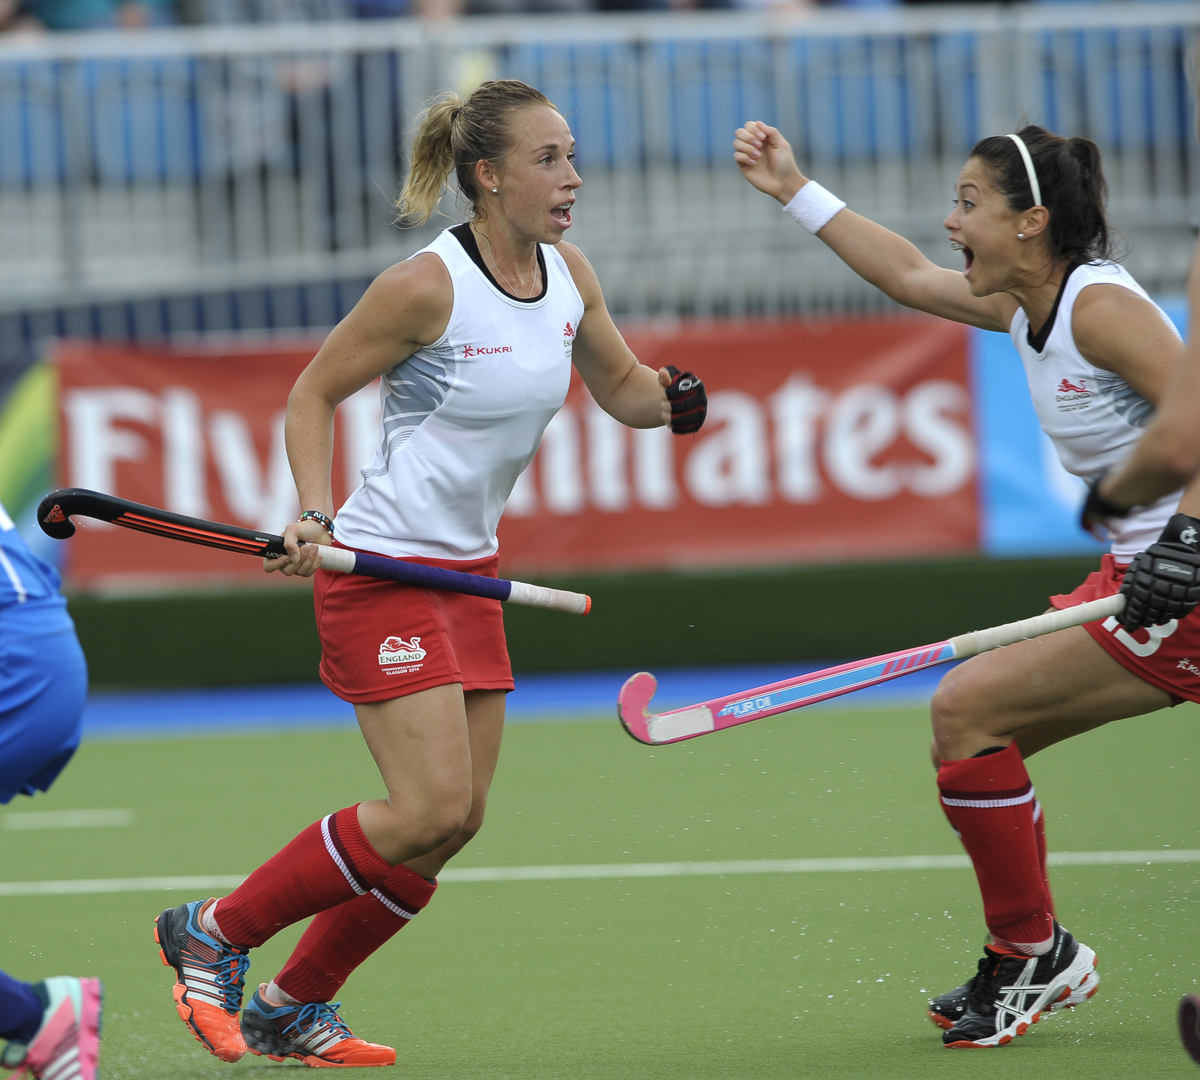 Susannah Townsend celebrates scoring the winning goal for England against Scotland during their pool game at the XX Commonwealth Games, Glasgow, 30th July 2014 - credit Ady Kerry.jpg